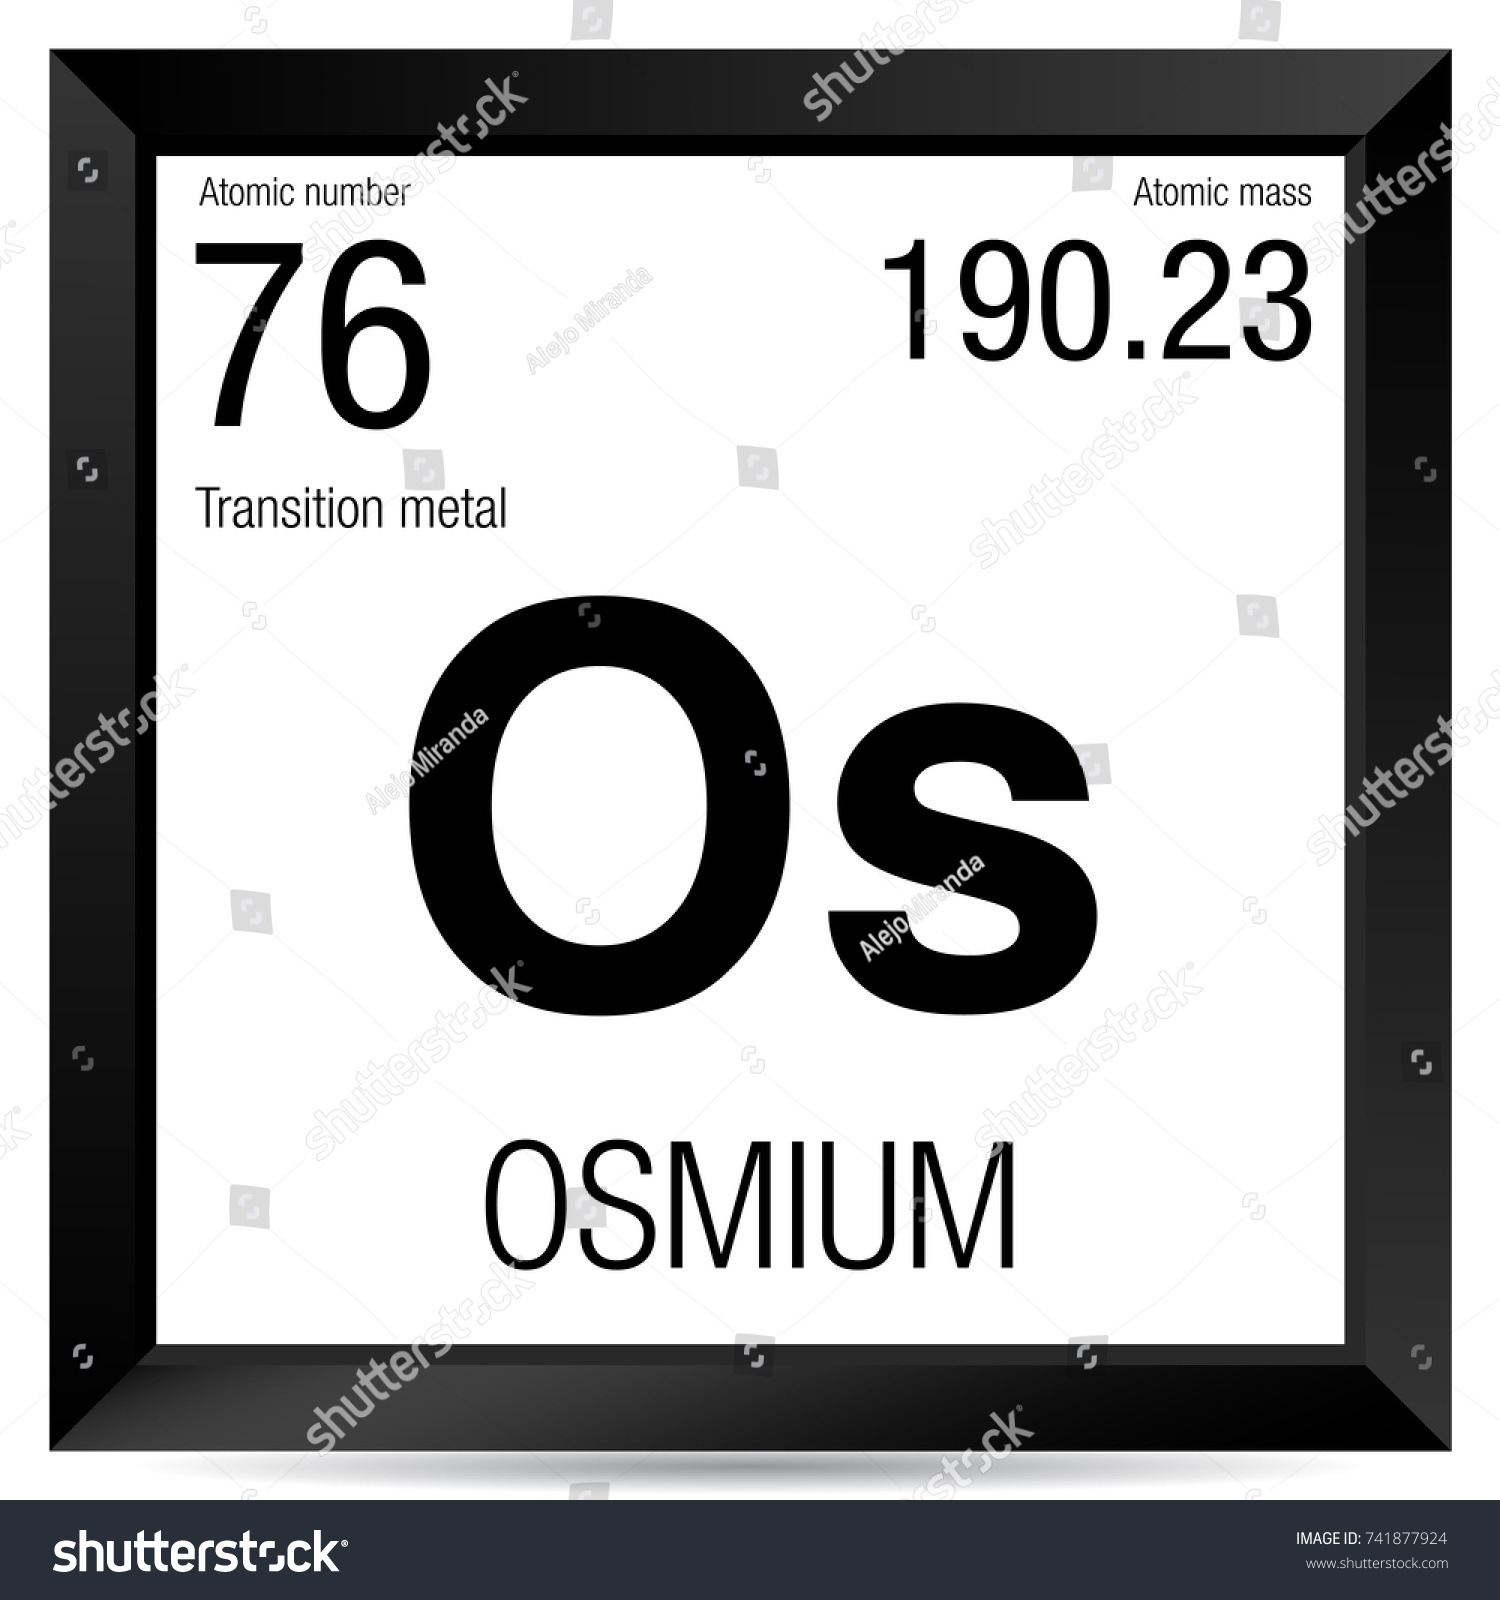 Symbol of mercury in the periodic table of elements images symbol of mercury in the periodic table of elements gallery symbol of mercury in the periodic gamestrikefo Images